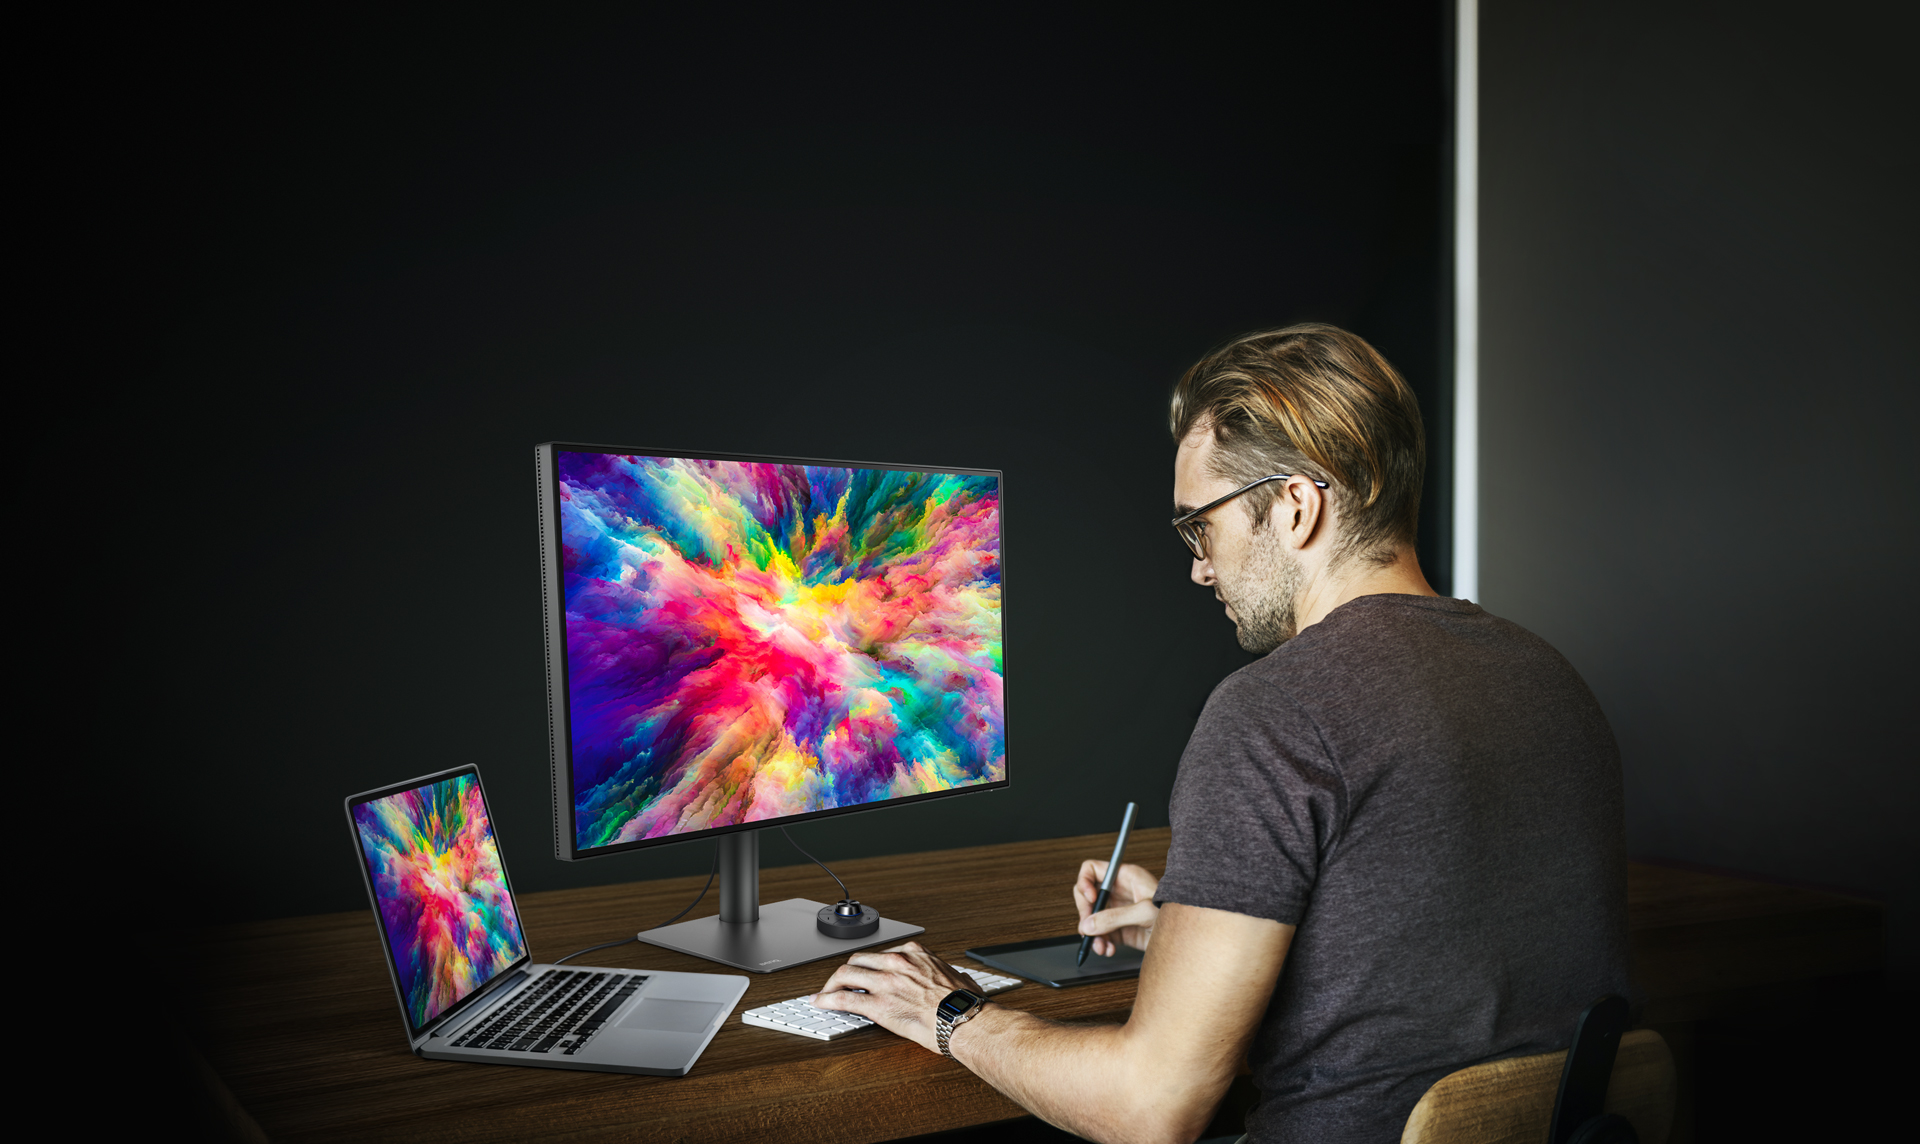 BenQ 4K USB-C Monitor for Macbook Pro PD3220U possesses the most suitable display modes to assist designers produce works of the highest quality.